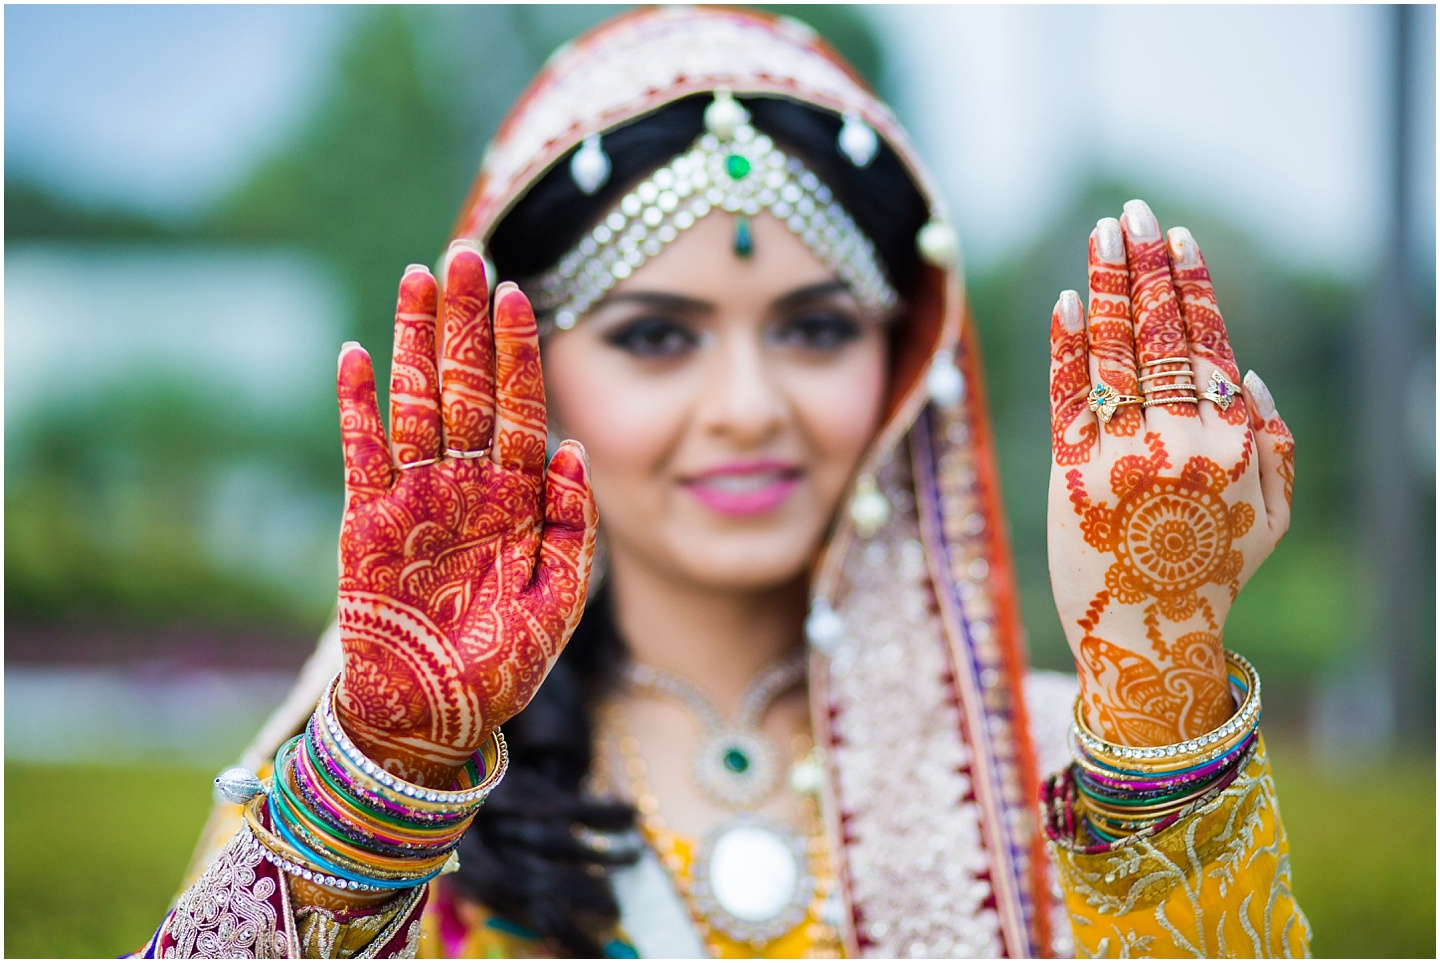 Pakistani Wedding Photographer | Shazeen & Bilal's Mehendi ...